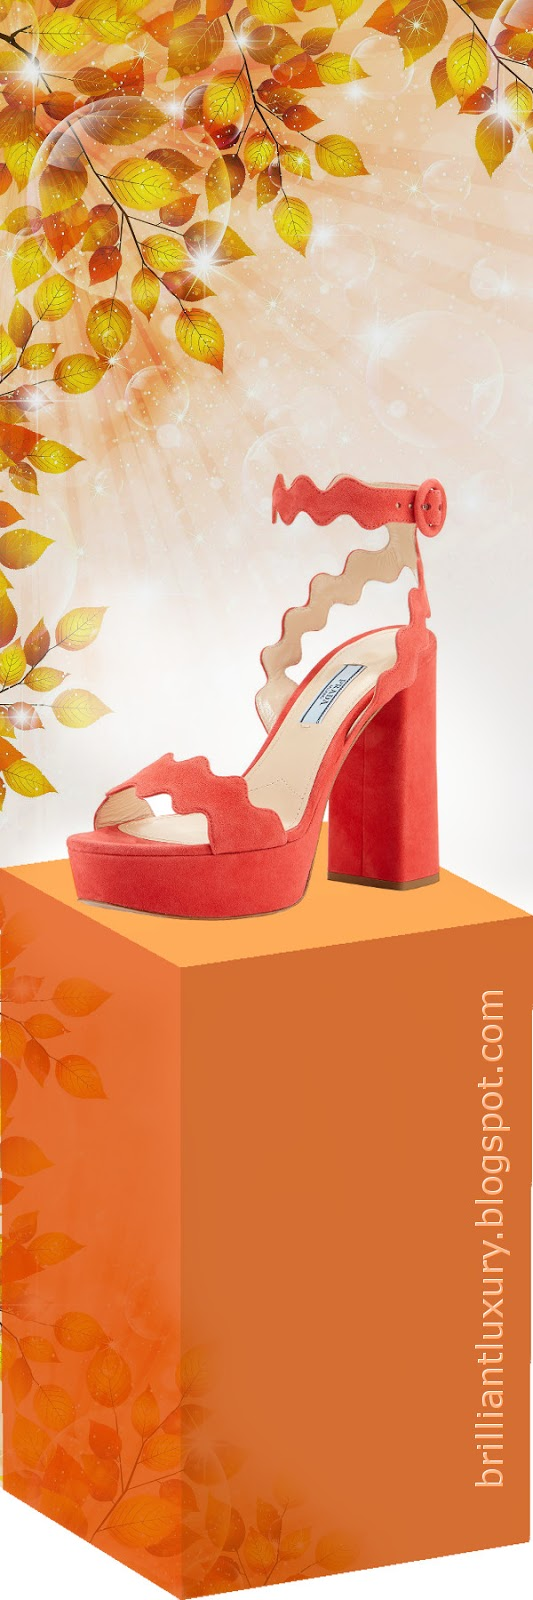 Brilliant Luxury ♦ Prada scalloped suede platform sandals #orange